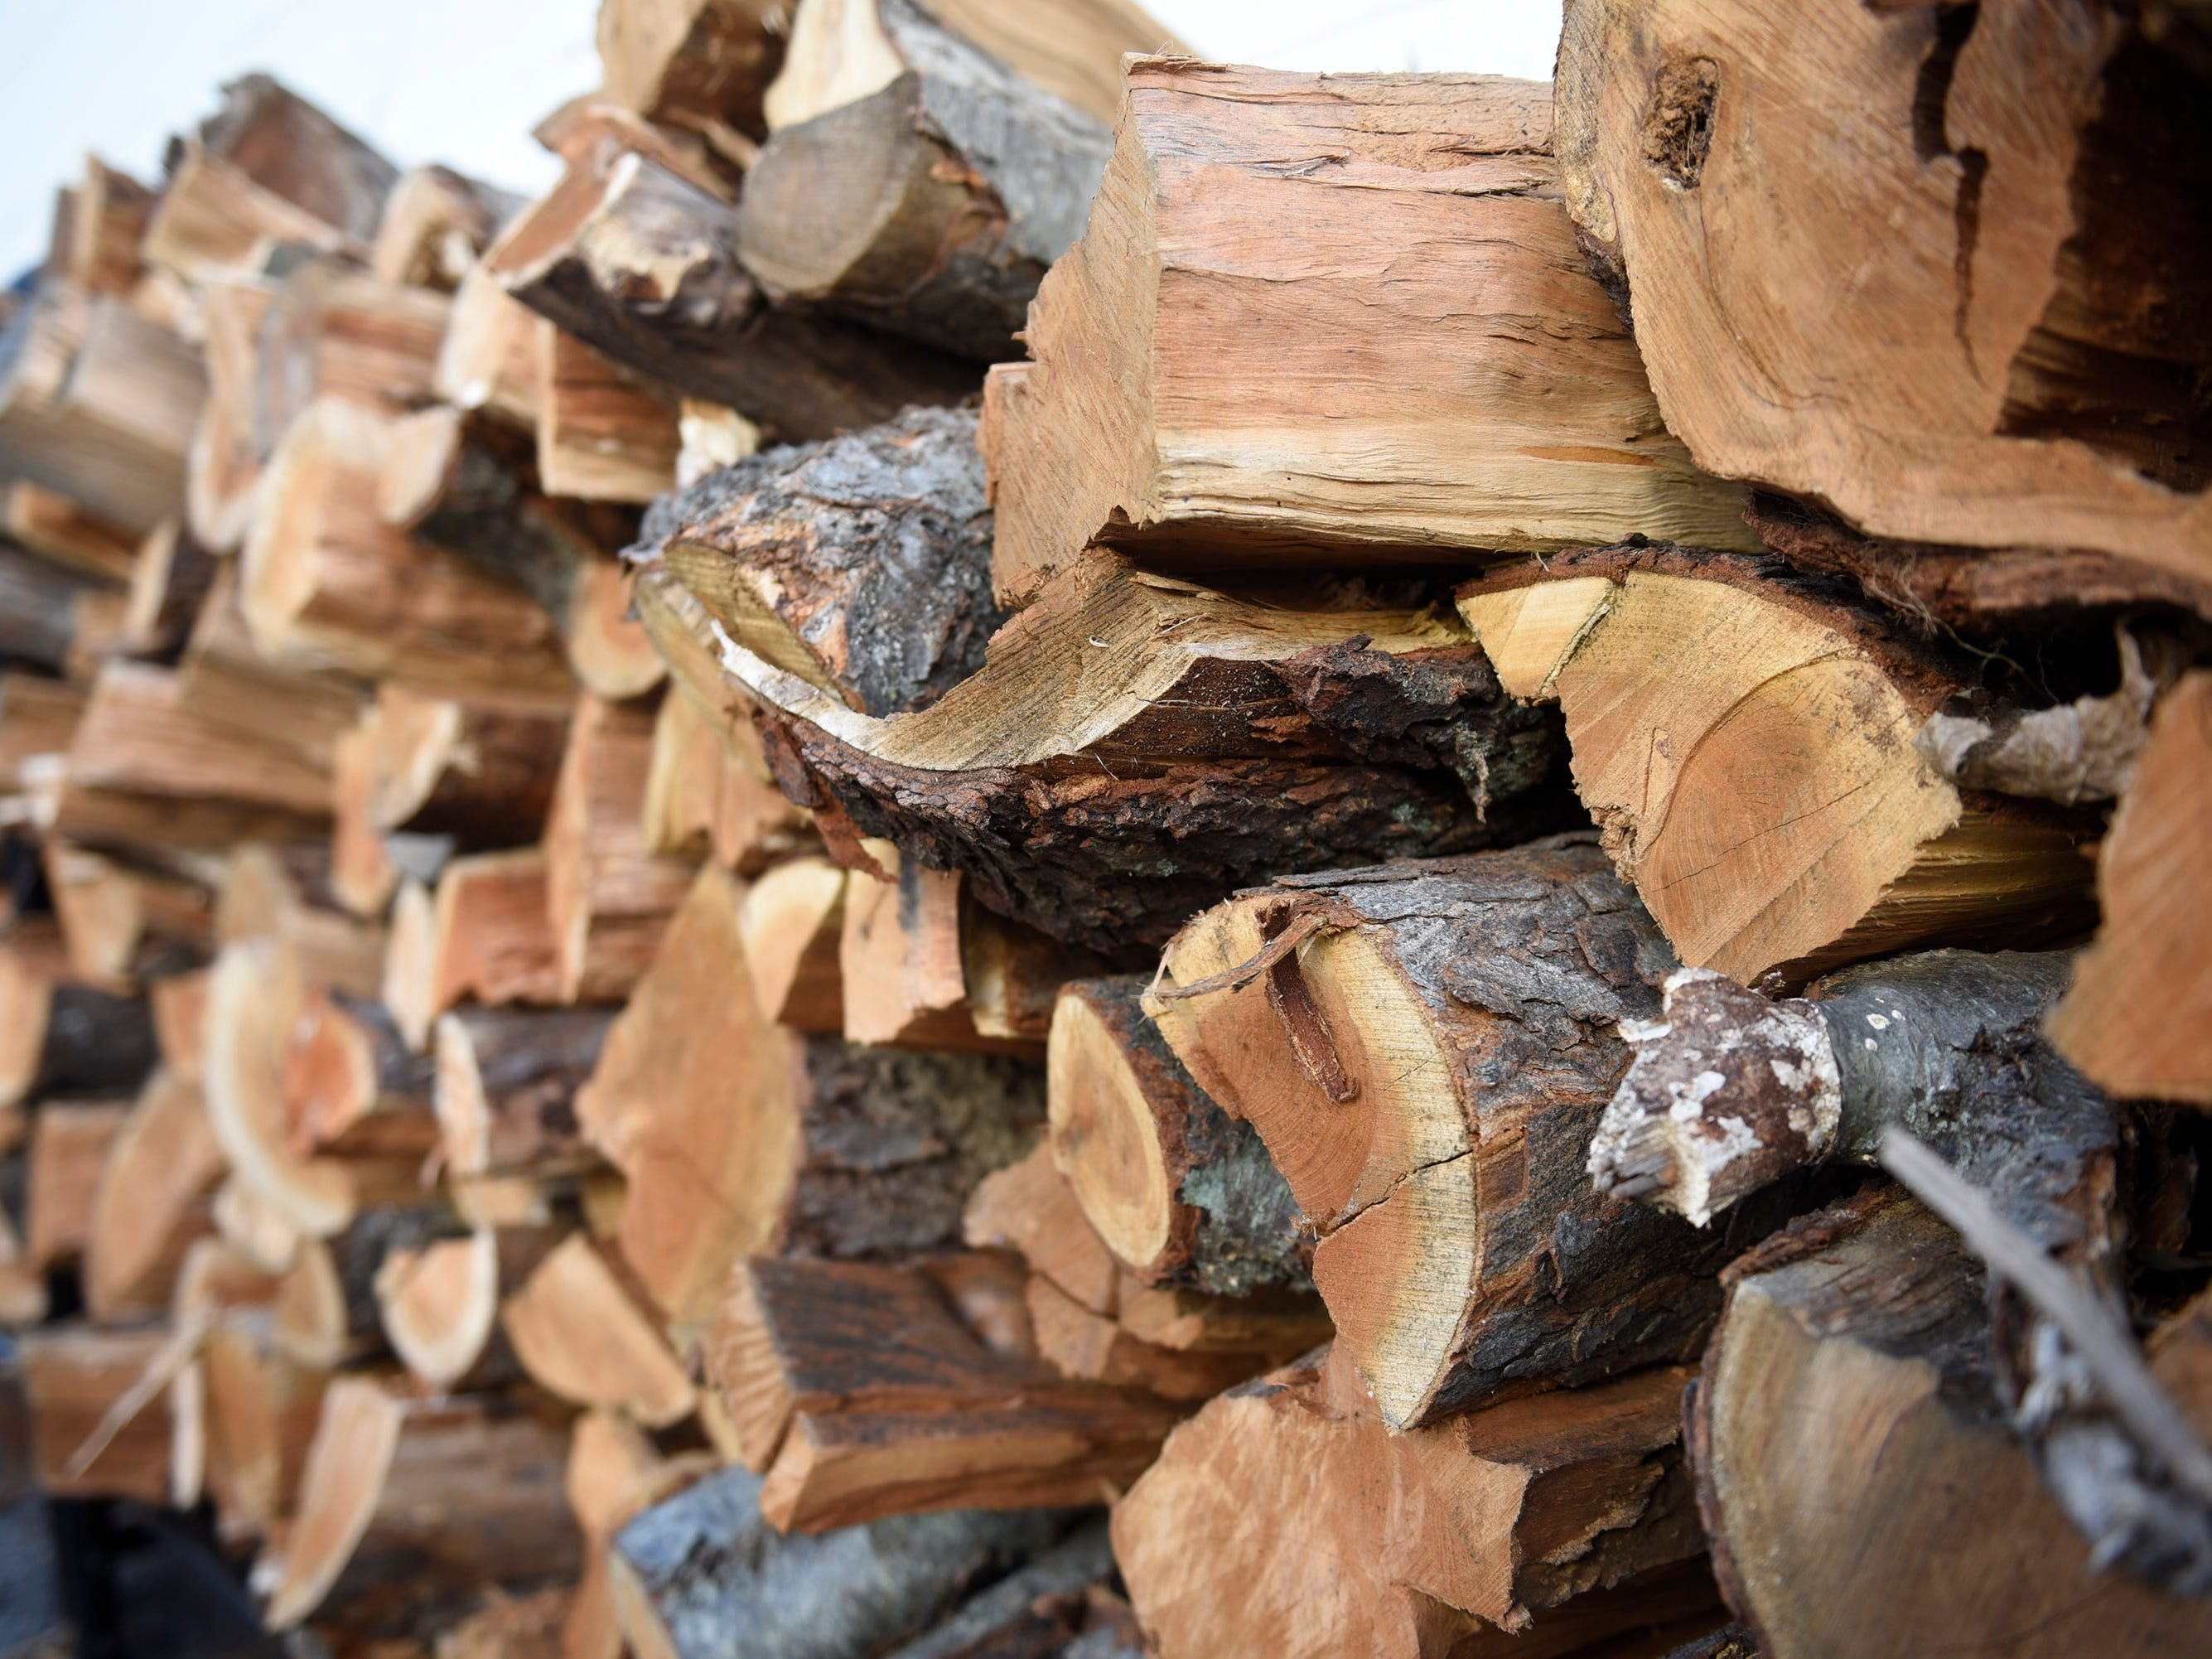 A large supply of wood is at the ready at Max and Bella's Smokehouse in Plymouth.